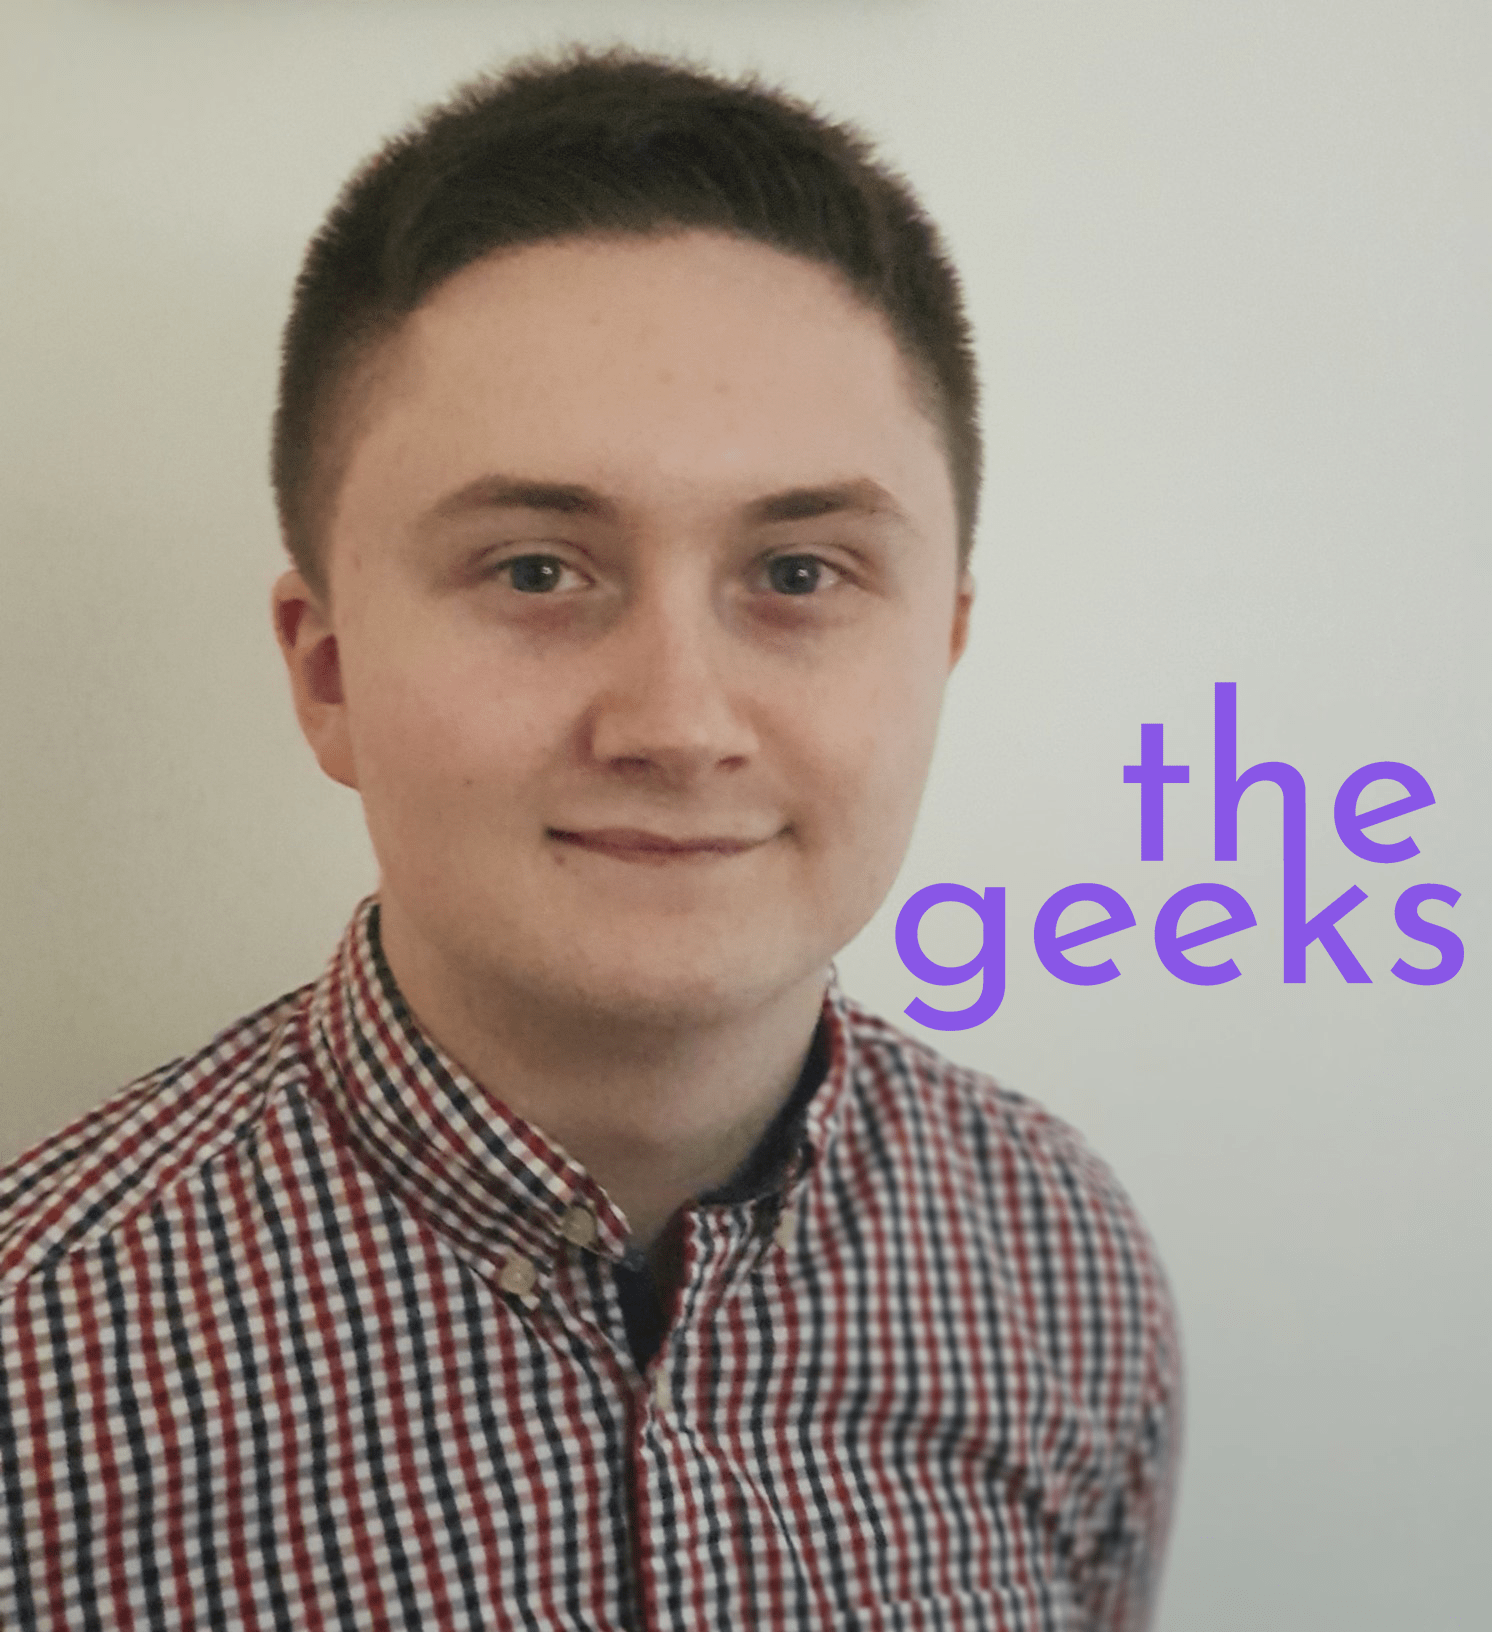 Who are the geeks? Picture of Owen Humphries, Geek Co-Founder